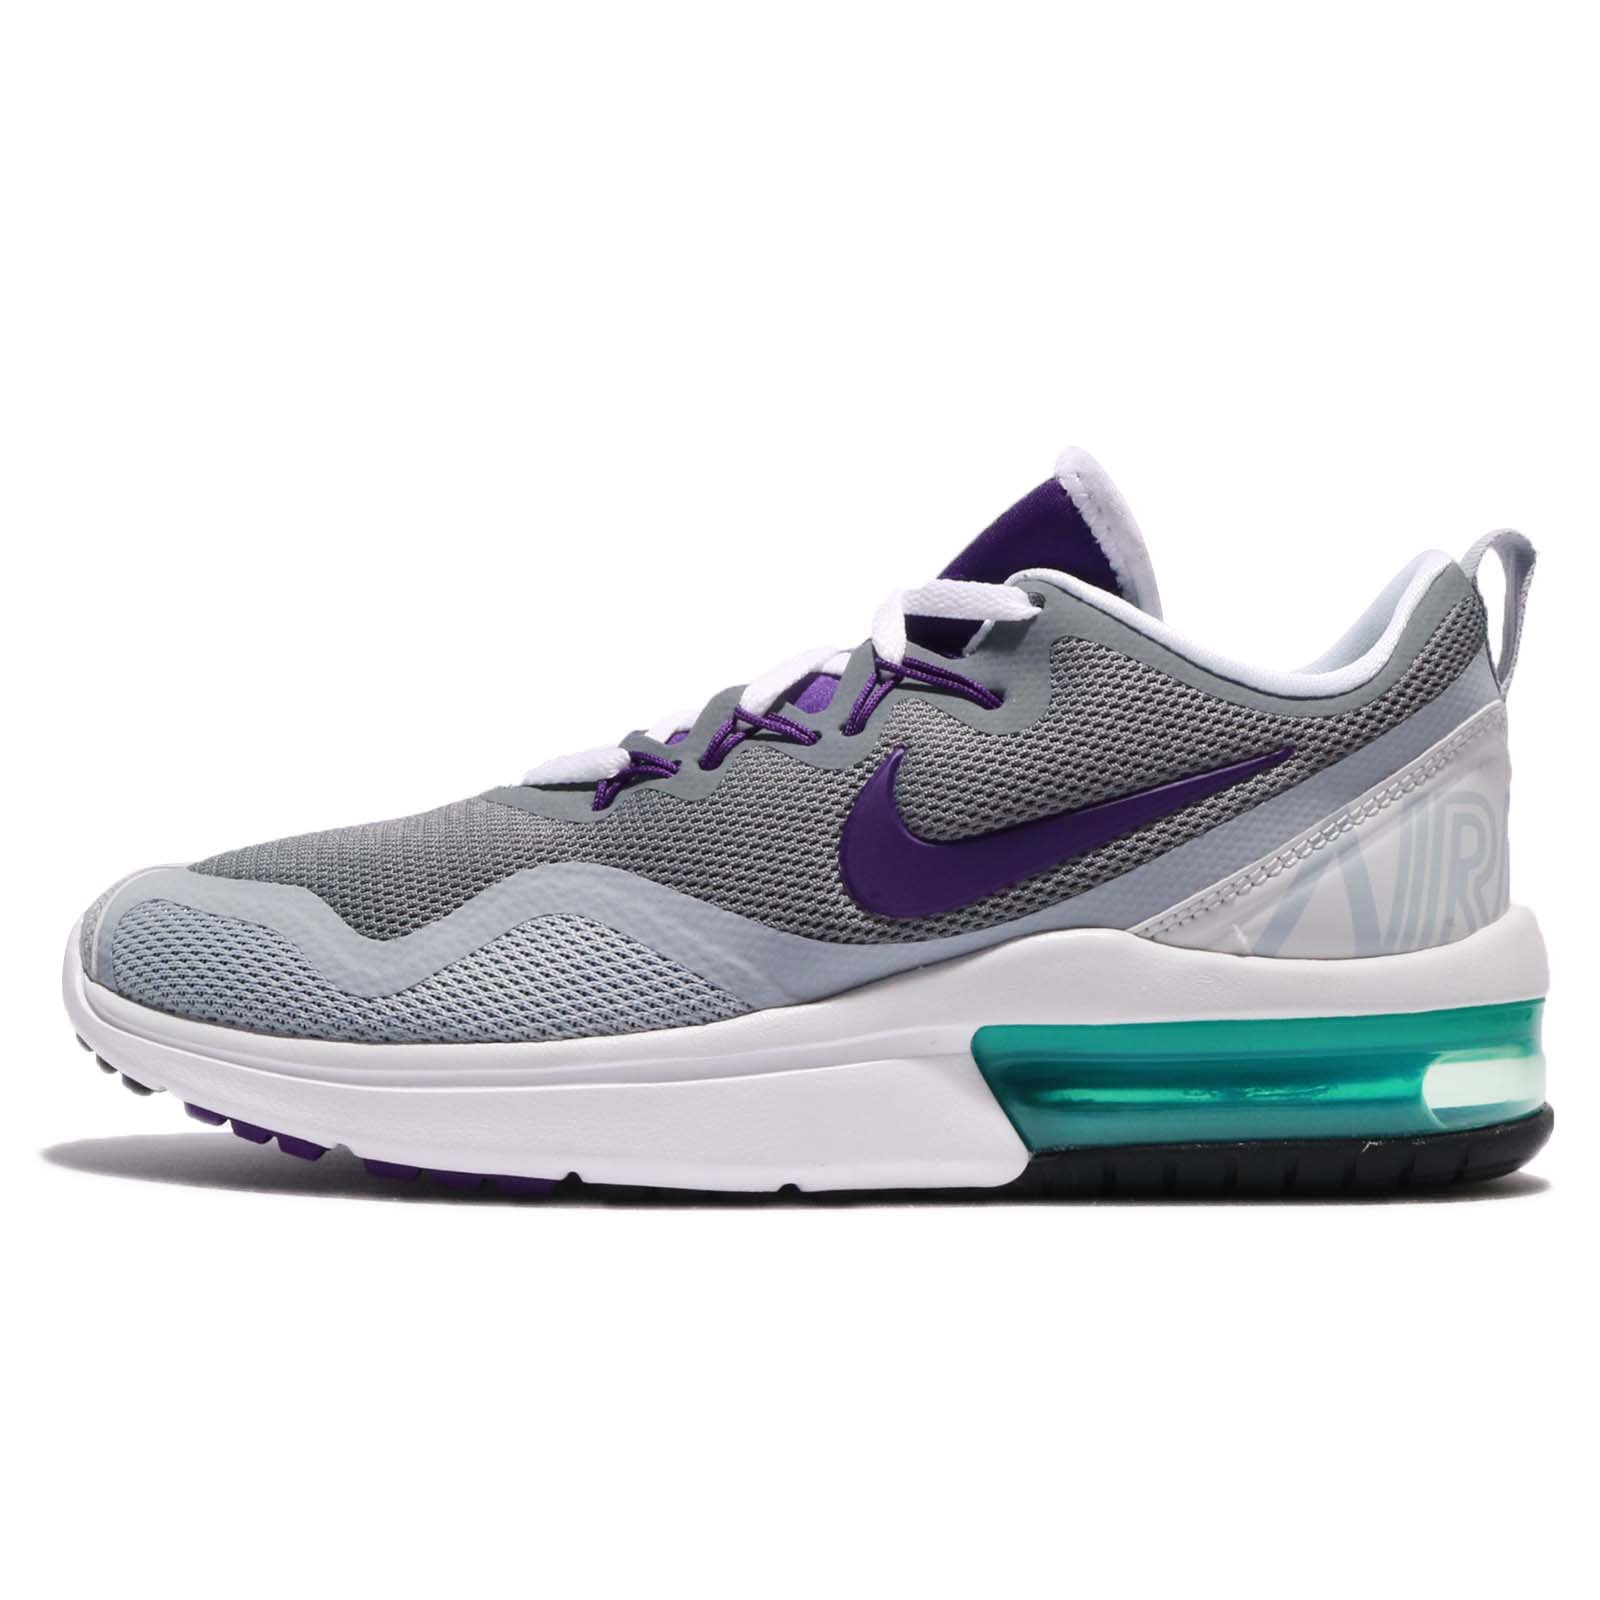 27ab1fa16205 Galleon - NIKE Women s Air Max Fury Cool Grey Athletic Shoes (8)